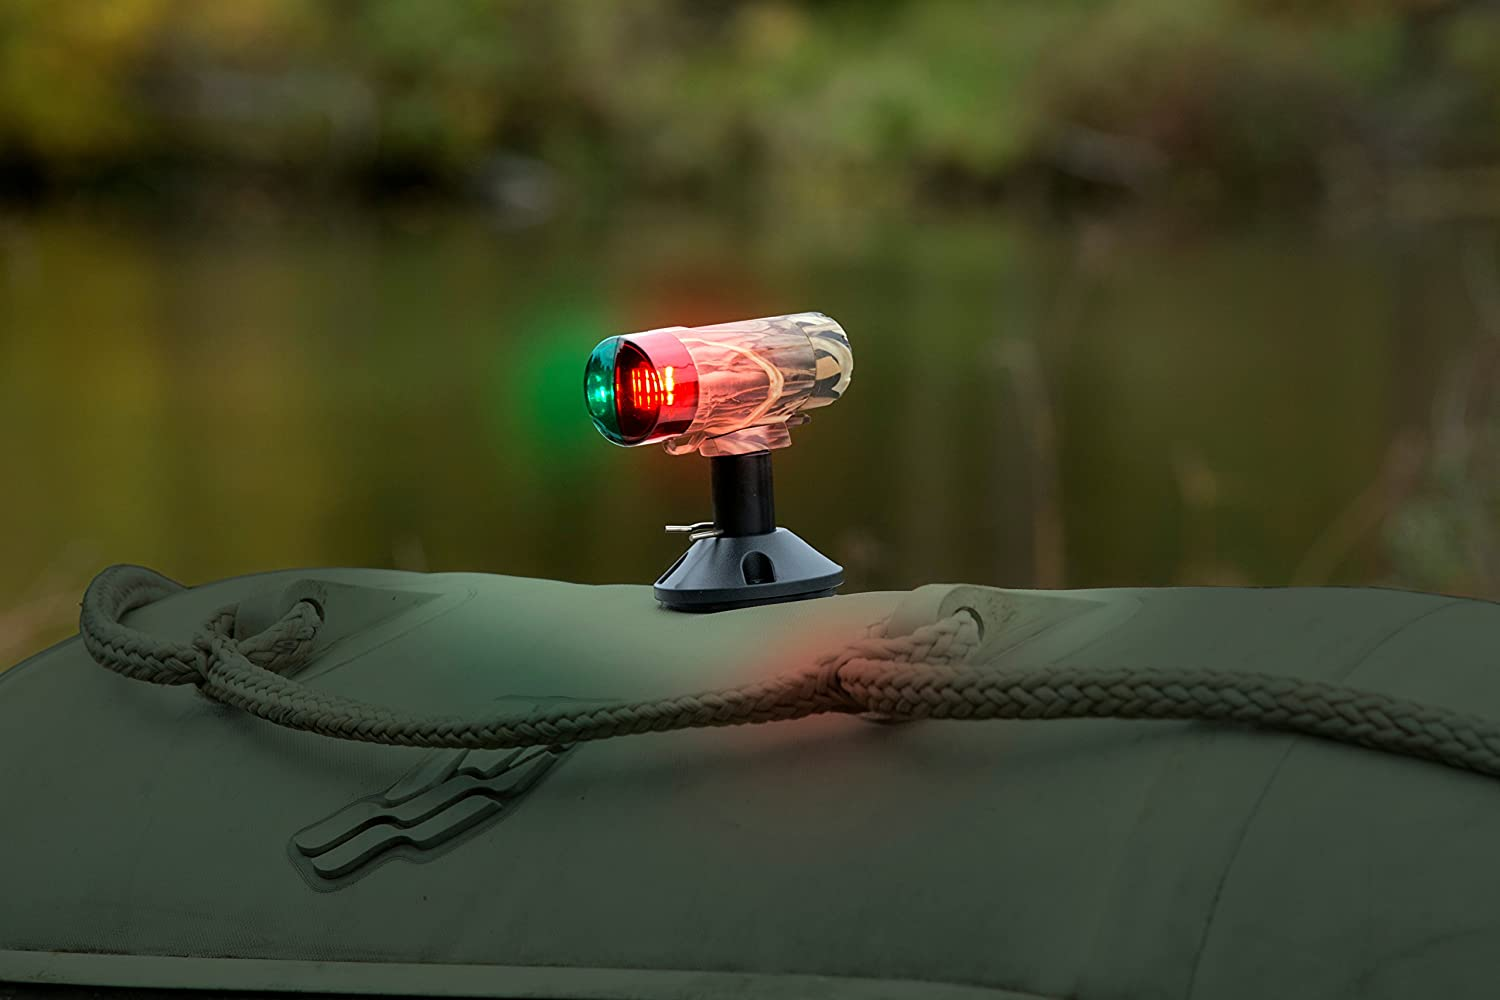 attwood 14193-7 Water-Resistant Deck Mount LED Navigation Light Kit Real Tree Max-4 Camouflage Finish Attwood Marine